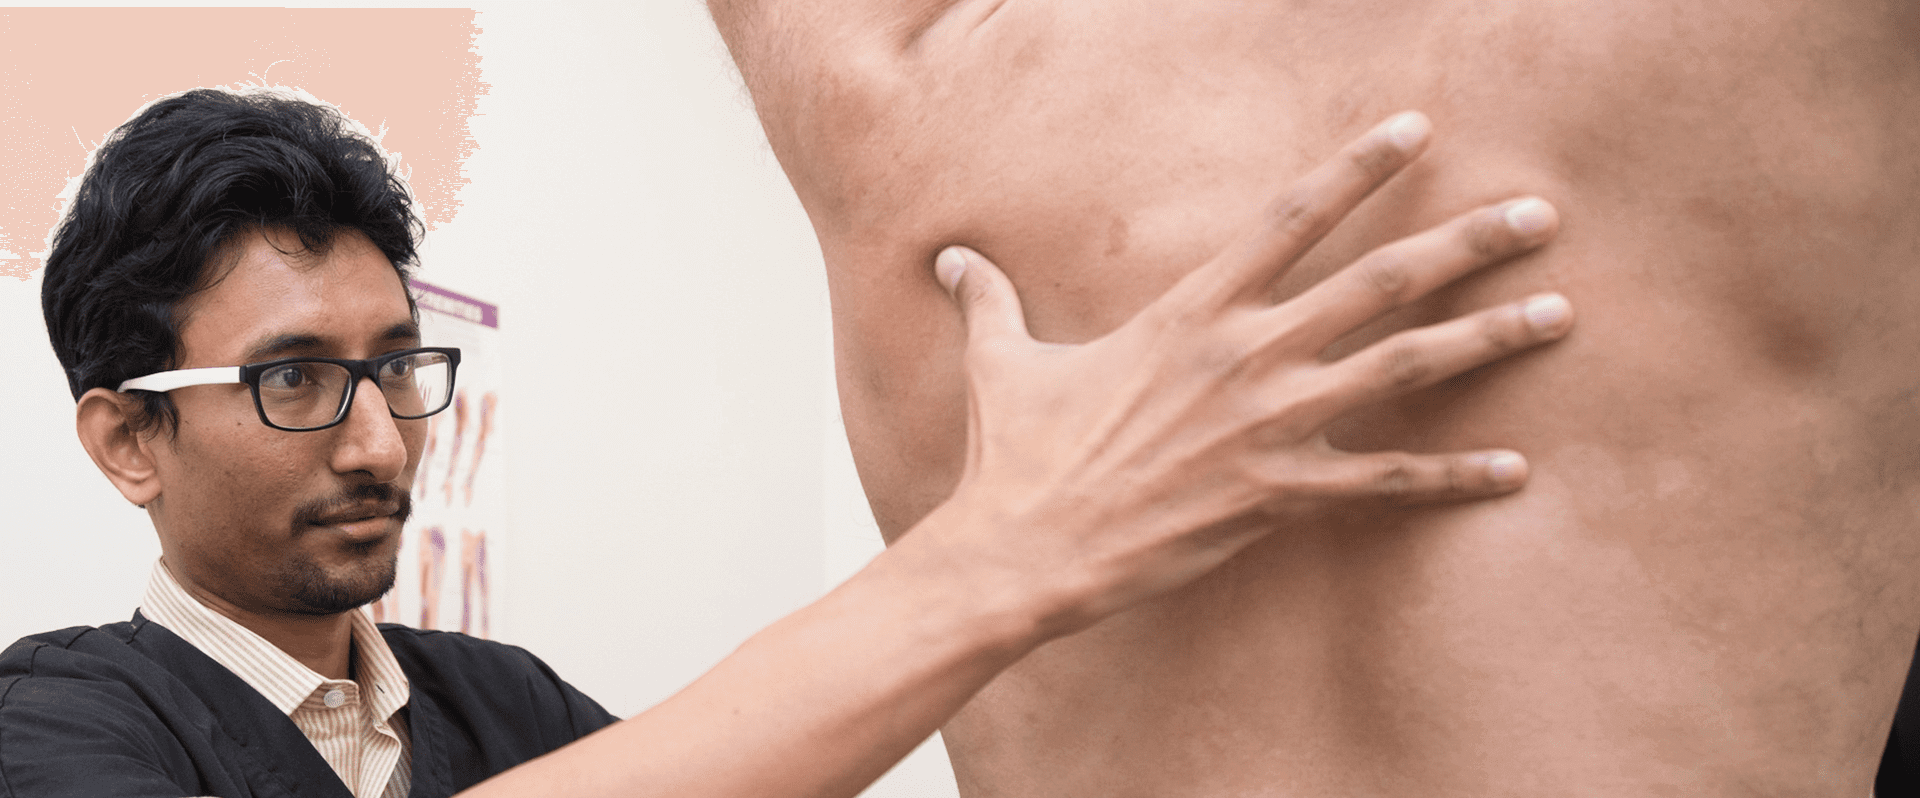 How is myofascial pain diagnosed?